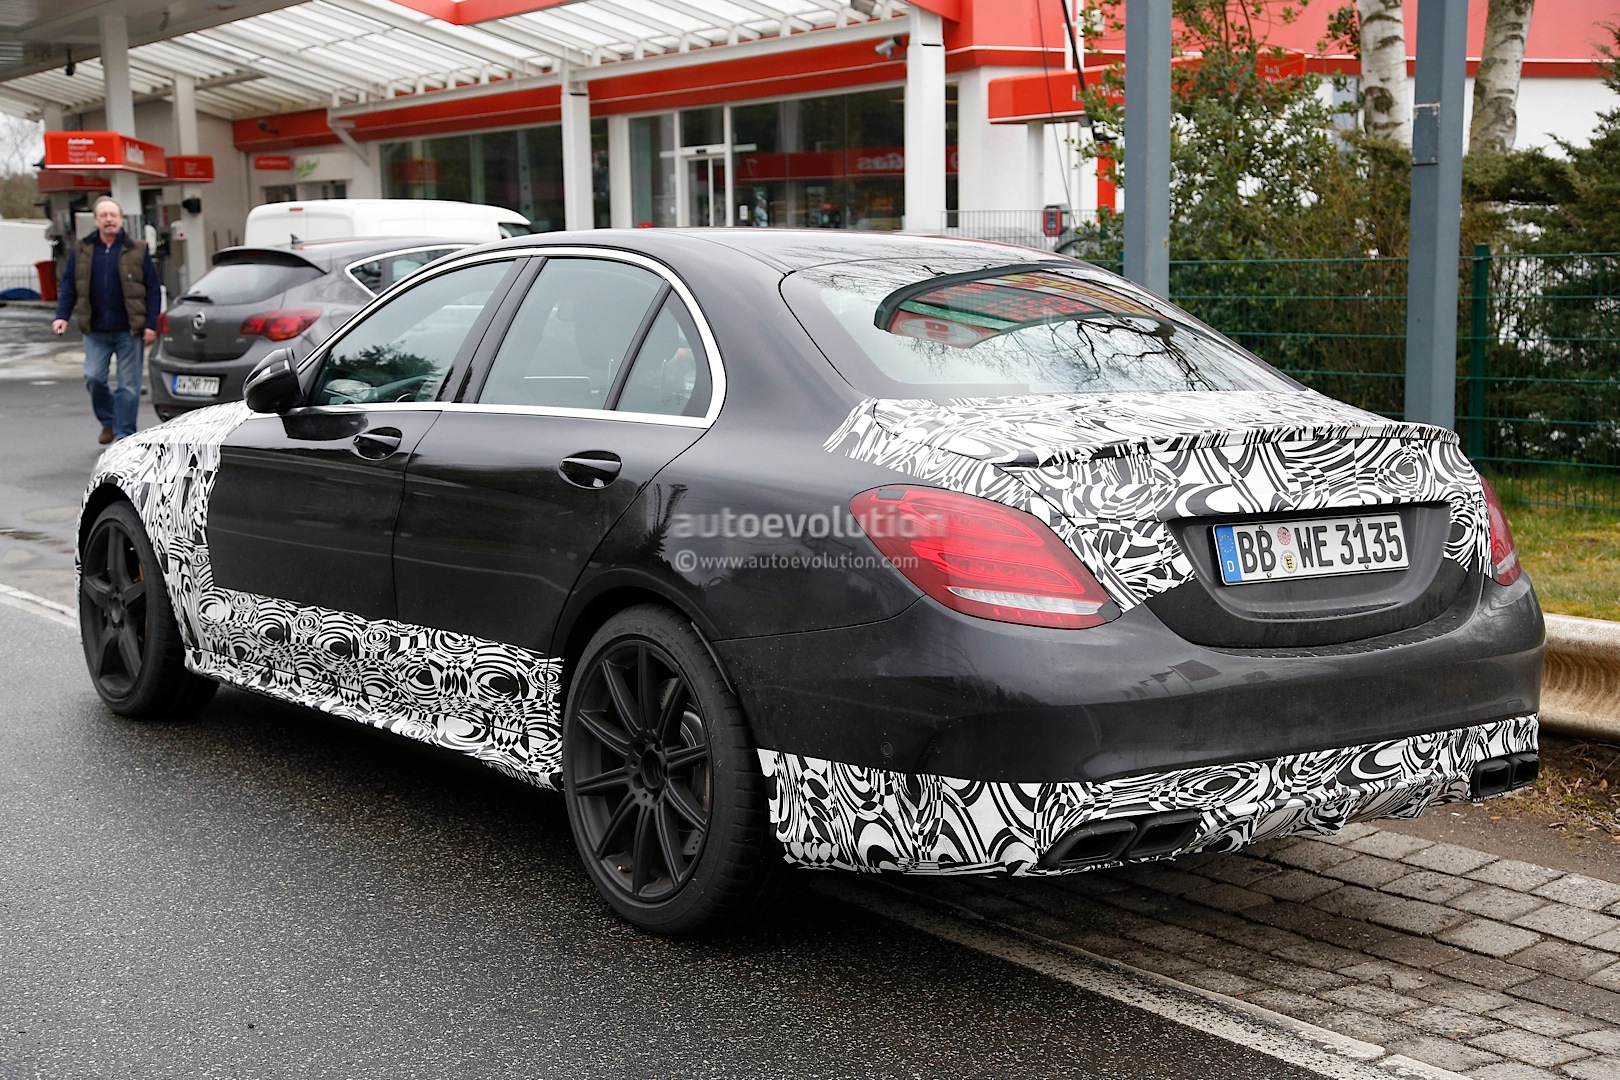 2015 c63 amg getting ready to fight the m3 in a twin turbo battle royale autoevolution. Black Bedroom Furniture Sets. Home Design Ideas